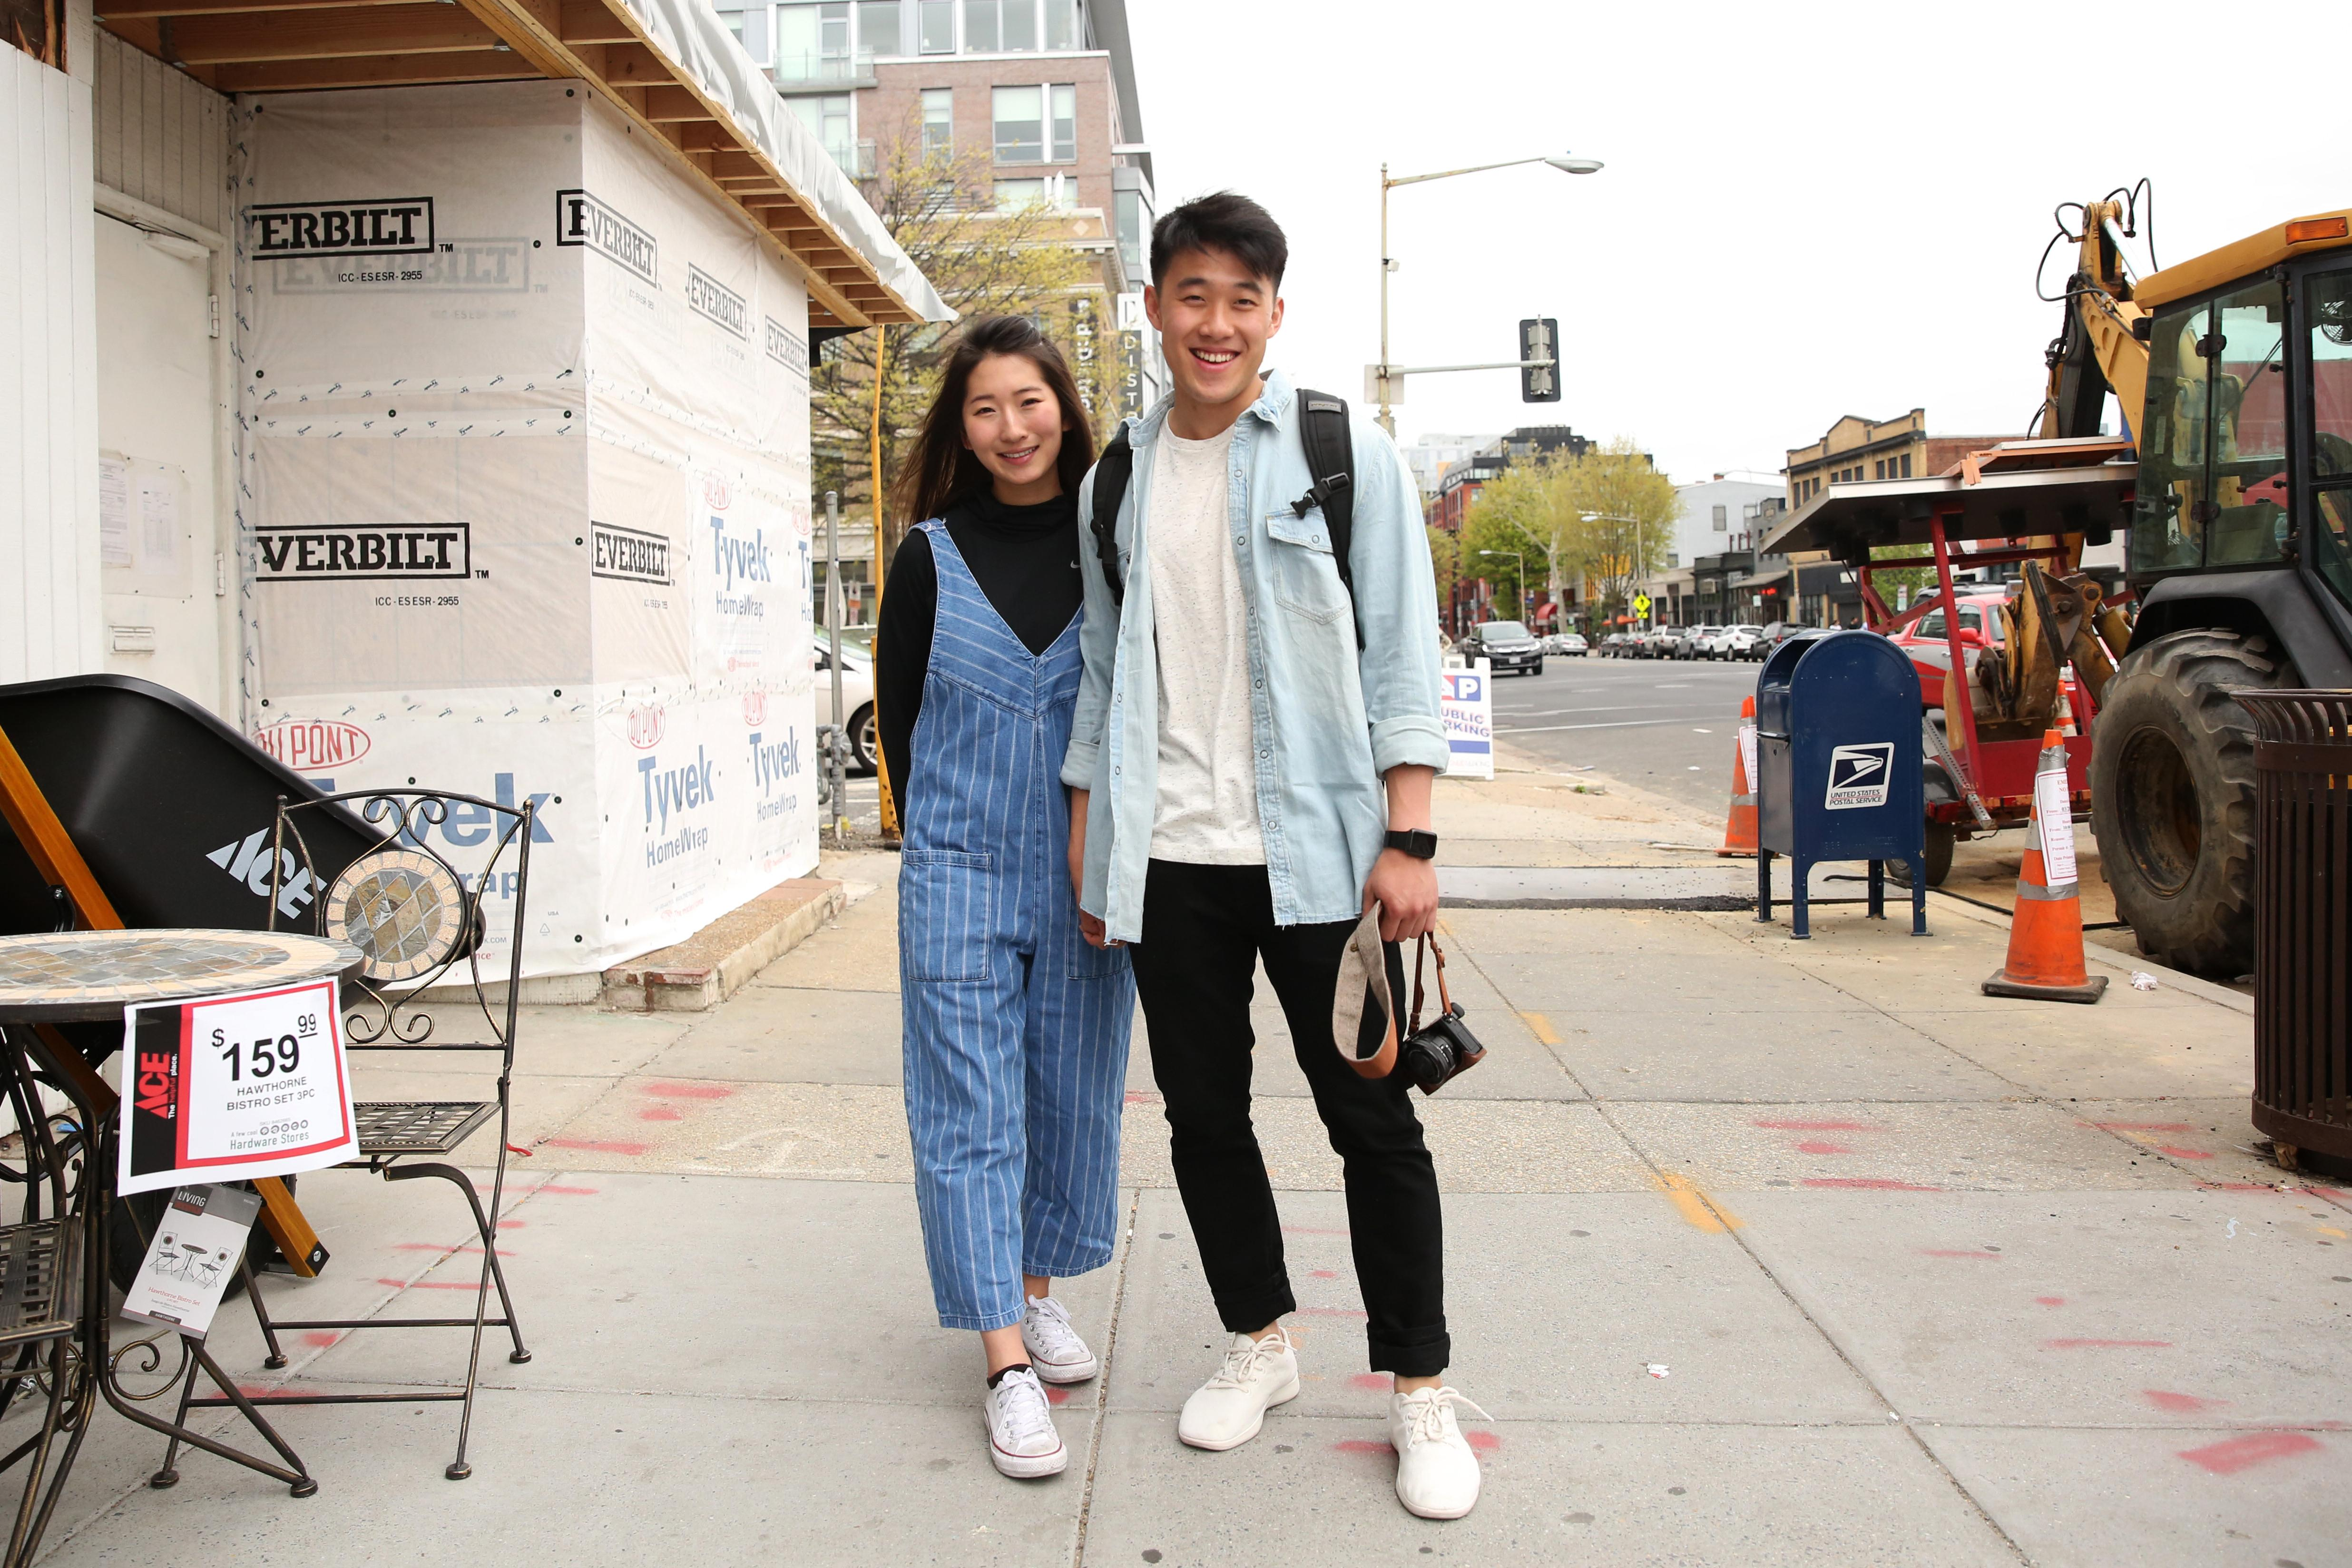 Adrienne Kim and Chang Dae Hahm both have great taste - check out that mockneck and jumpsuit!(Amanda Andrade-Rhoades/DC Refined)